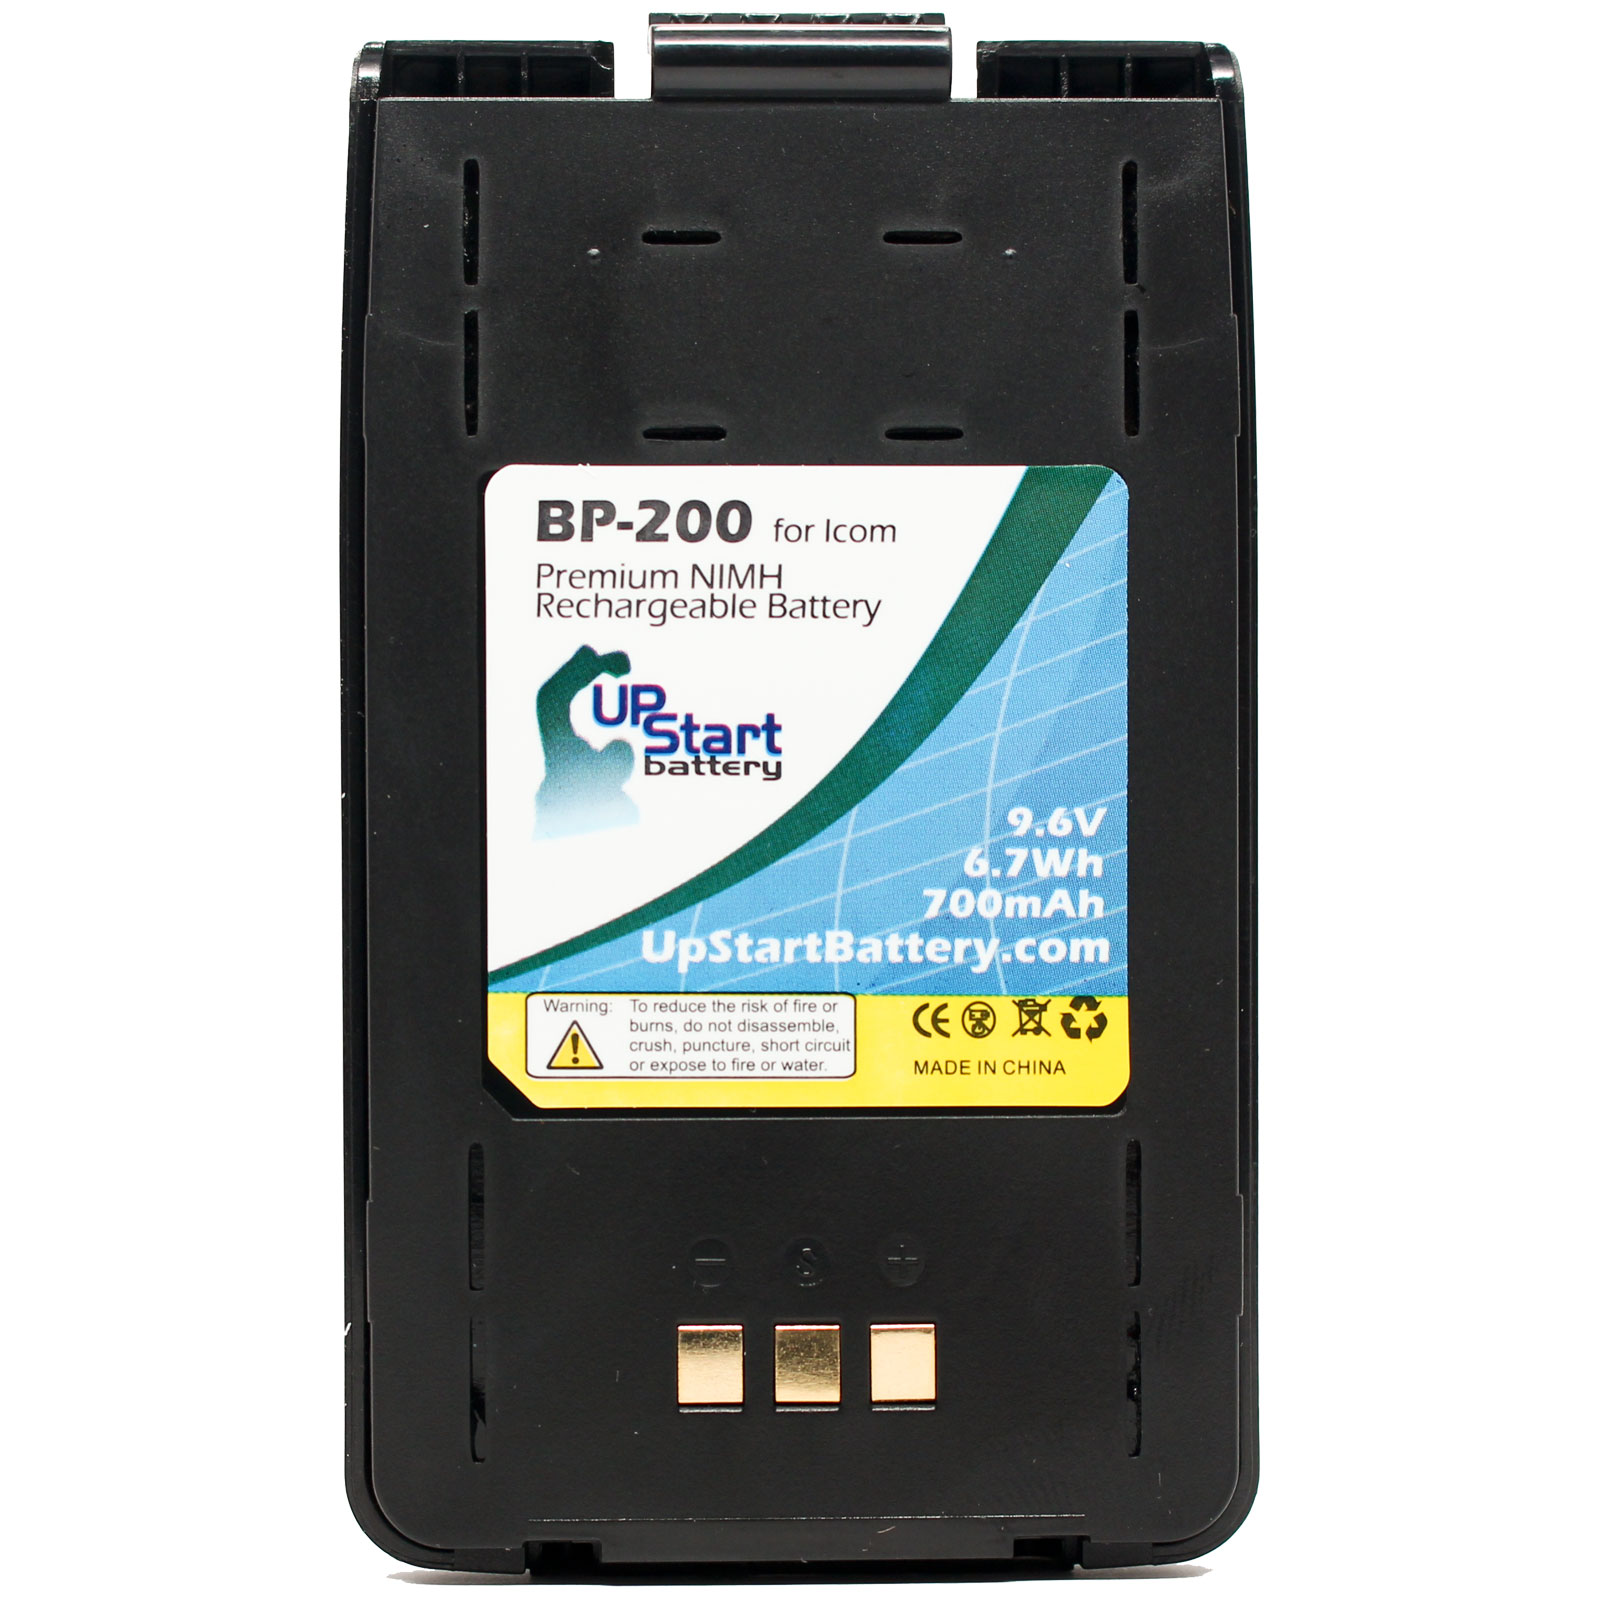 Icom BP-200 Battery with Clip - Replacement Icom BP-200 Two-Way Radio Battery (700mAh, 9.6V, NI-MH) - image 4 of 4